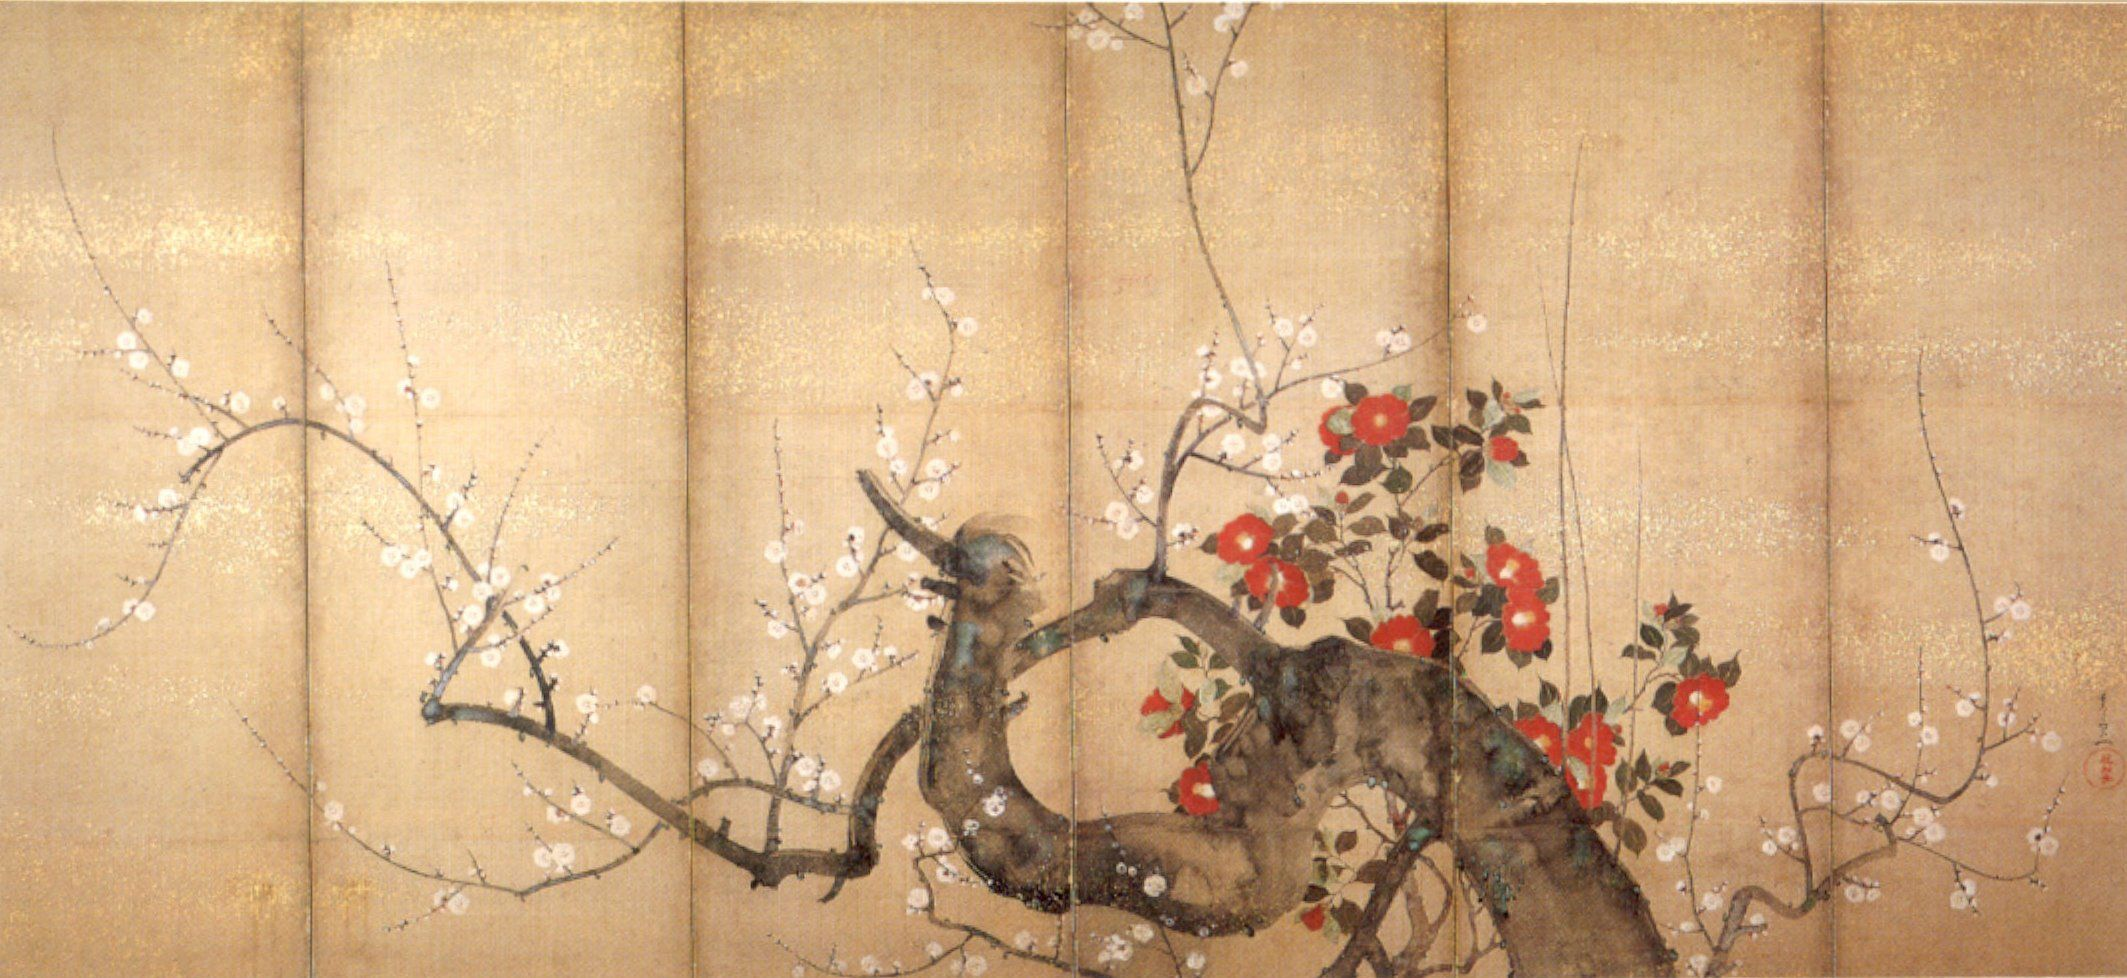 Color in japanese art - Flowering Plum And Camellia Six Fold Screen Suzuki_kiitsu 1850s Art Japanese Screens Pinterest Ink Color The Winter And Japanese Art